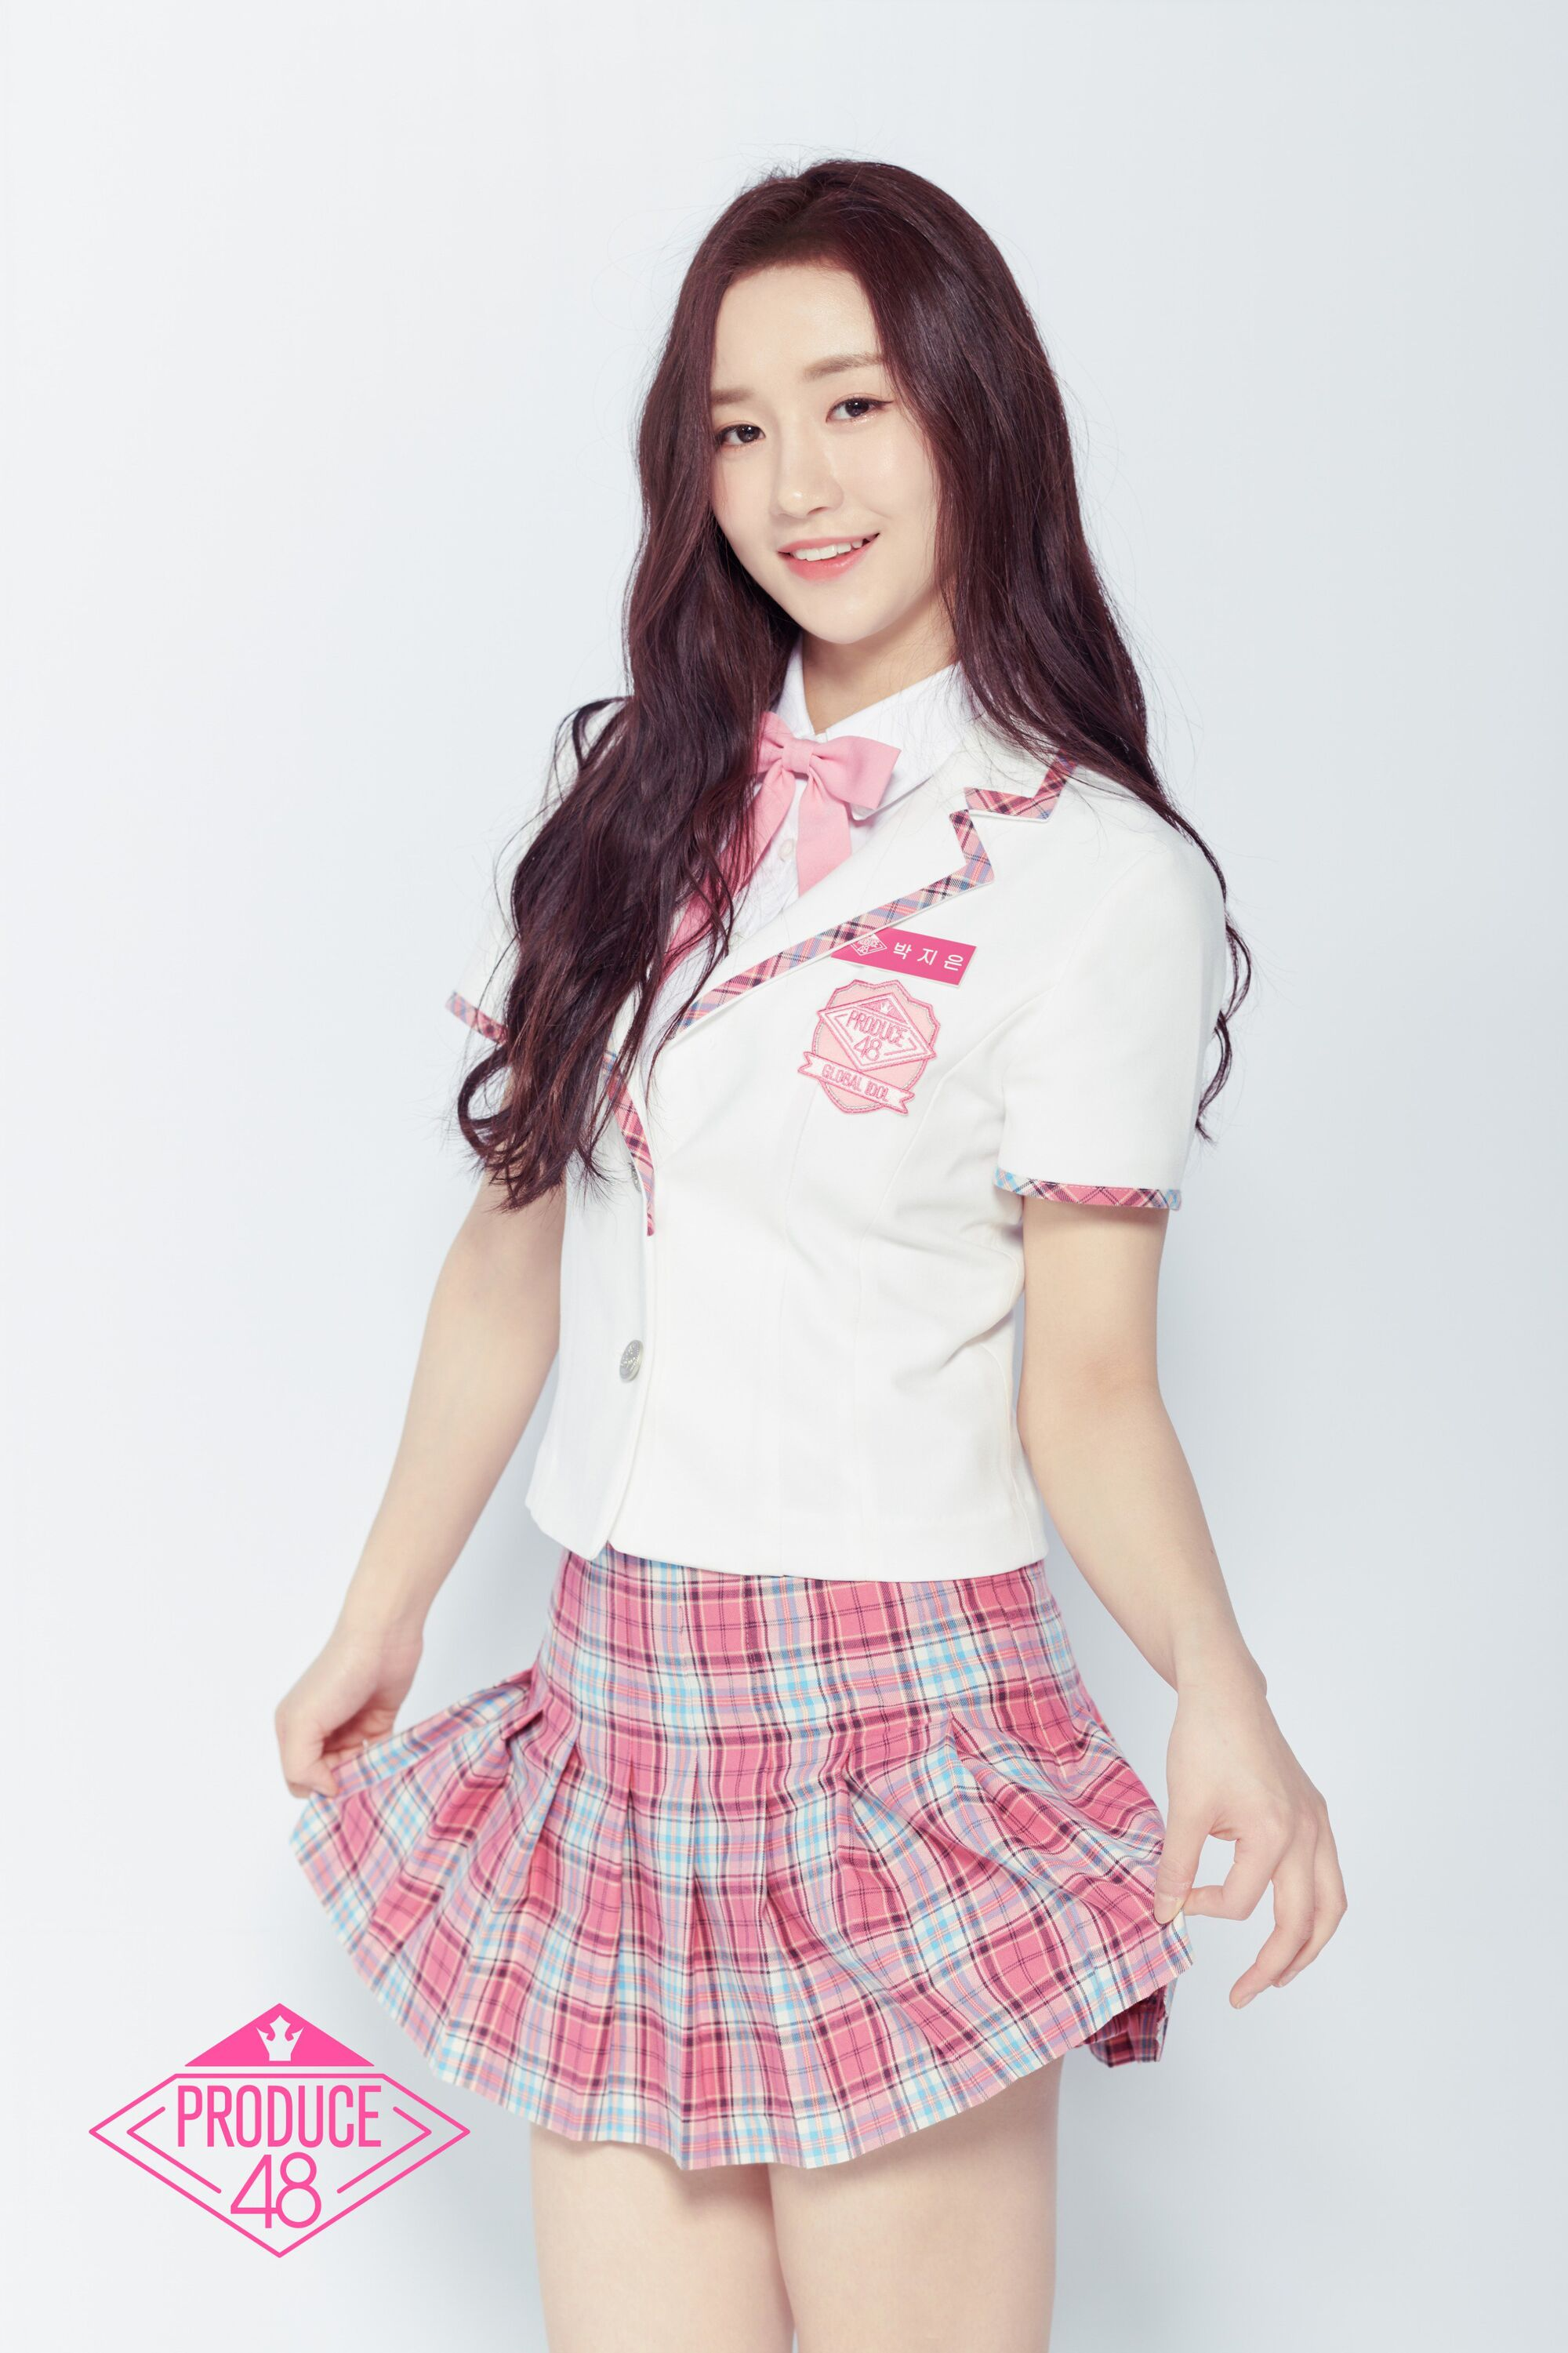 Park Jieun | Produce 101 Wikia | FANDOM powered by Wikia